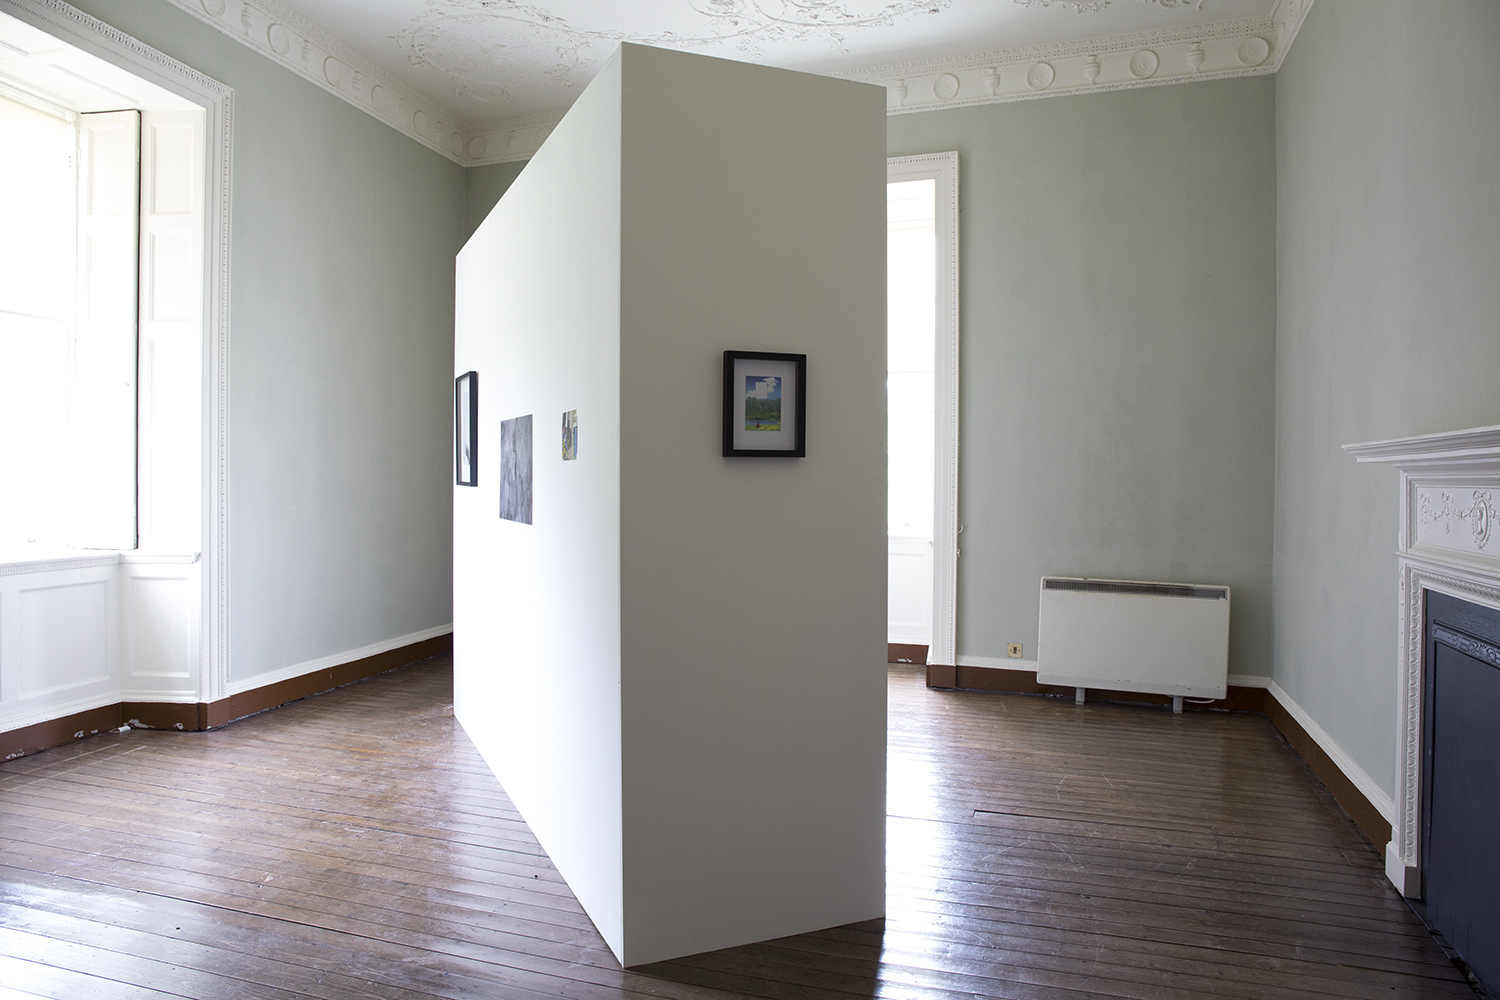 Installation View @ Rathfarnham Castle, Dublin, Ireland